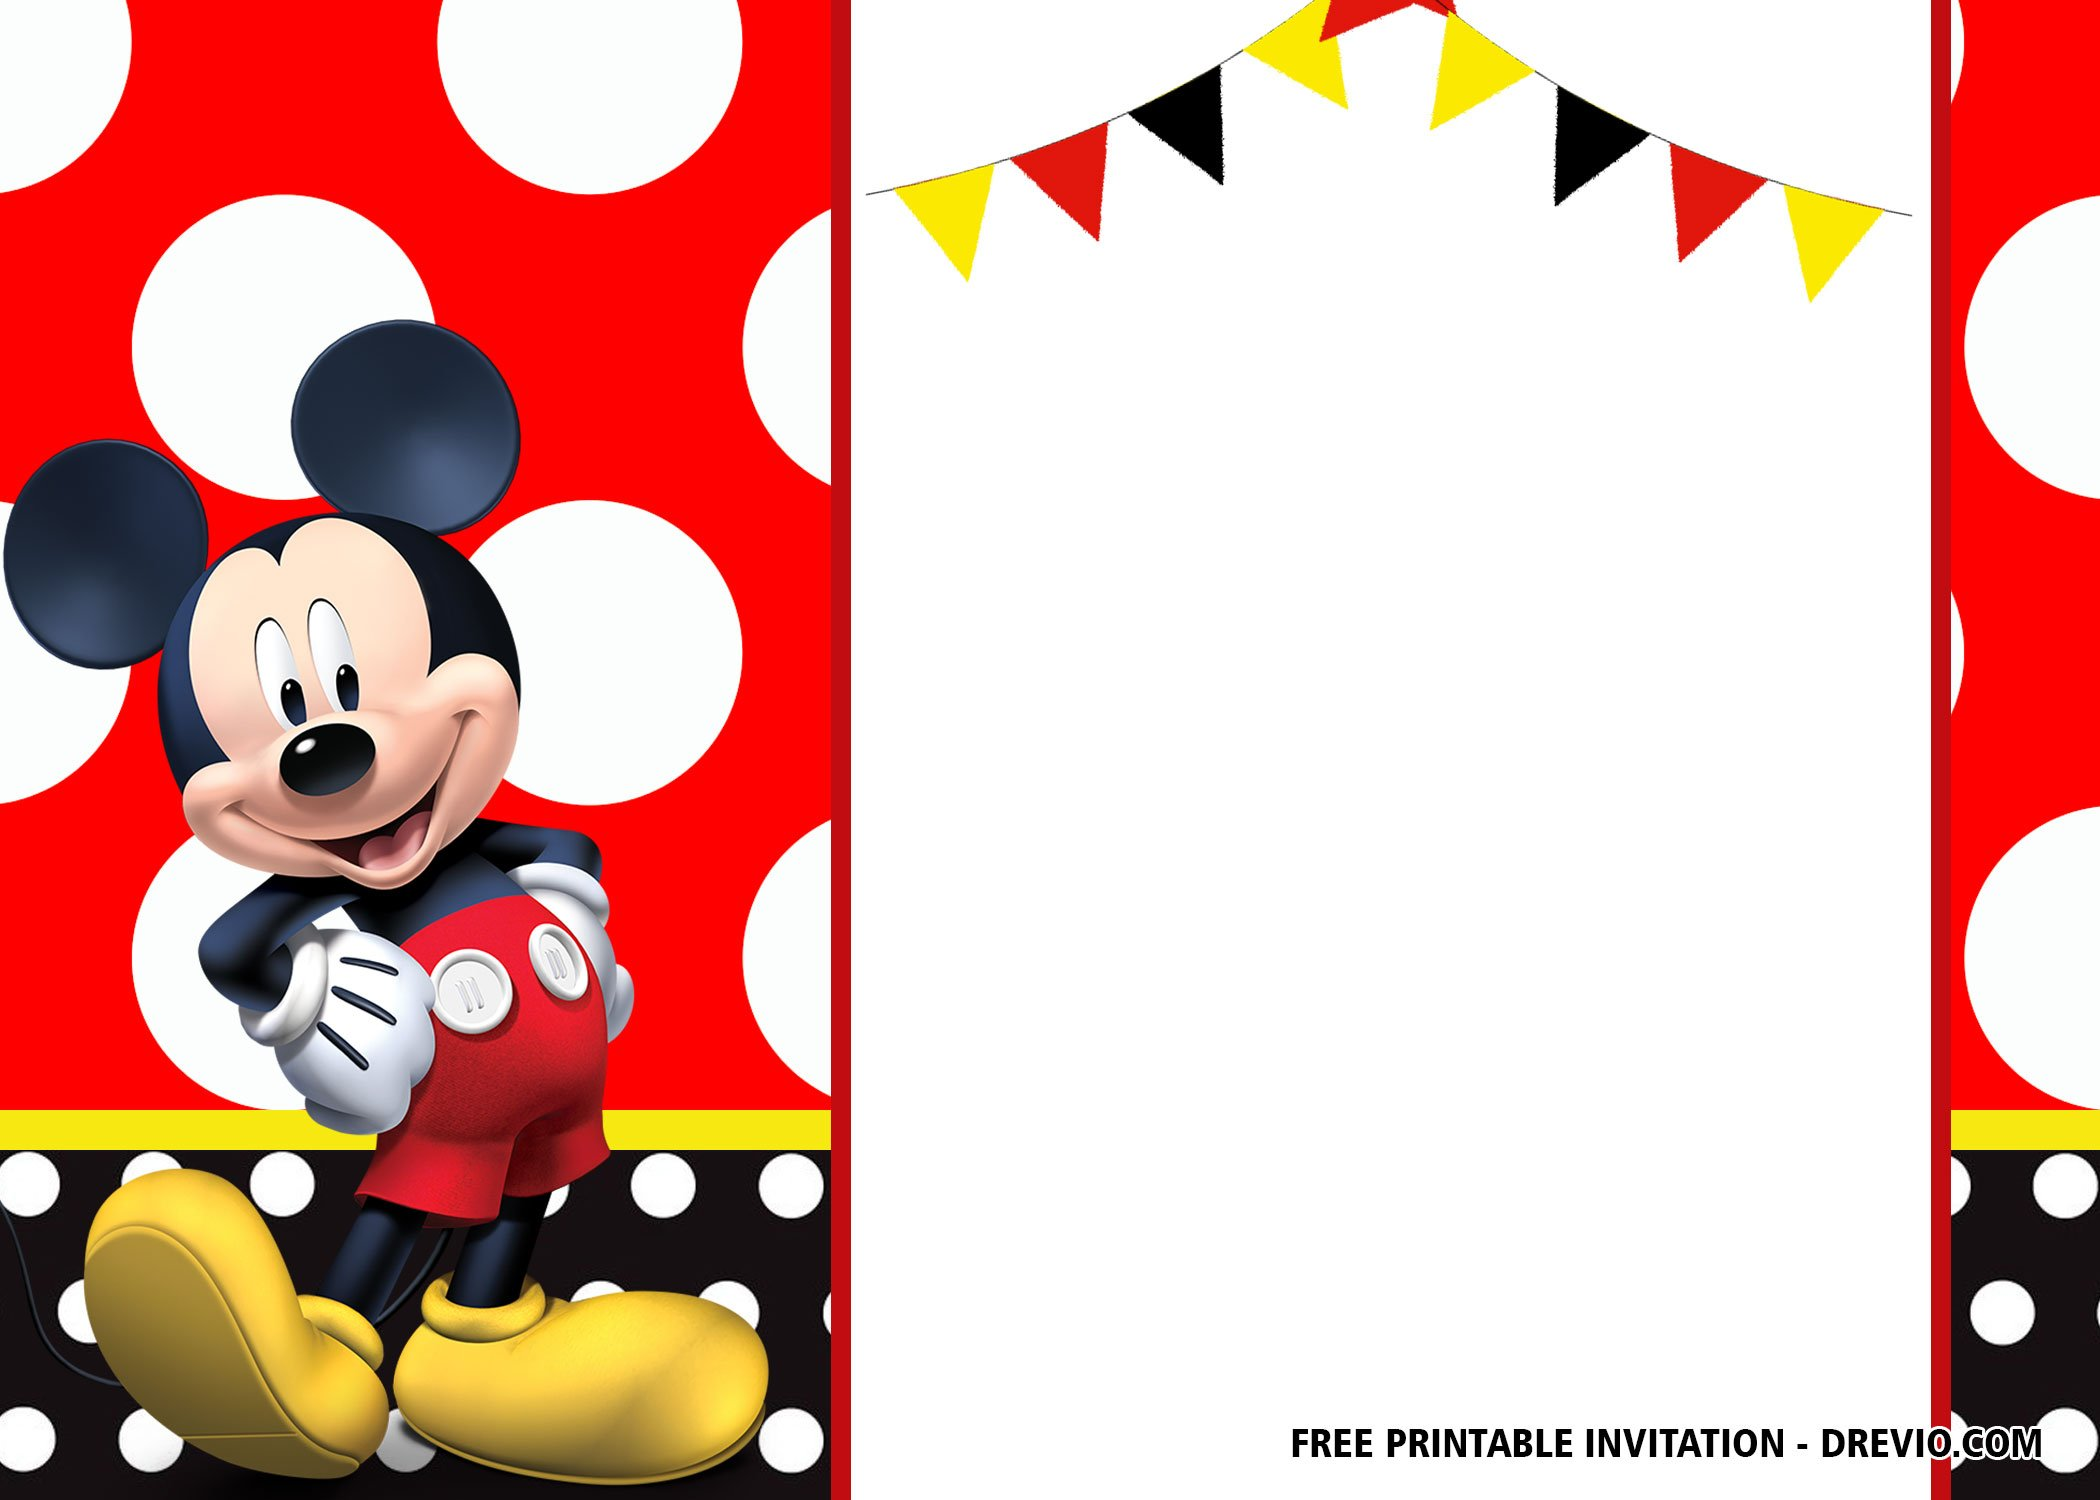 Free Mickey Mouse Birthday Invitation Templates Latest Download Hundreds Free Printable Birthday Invitation Templates